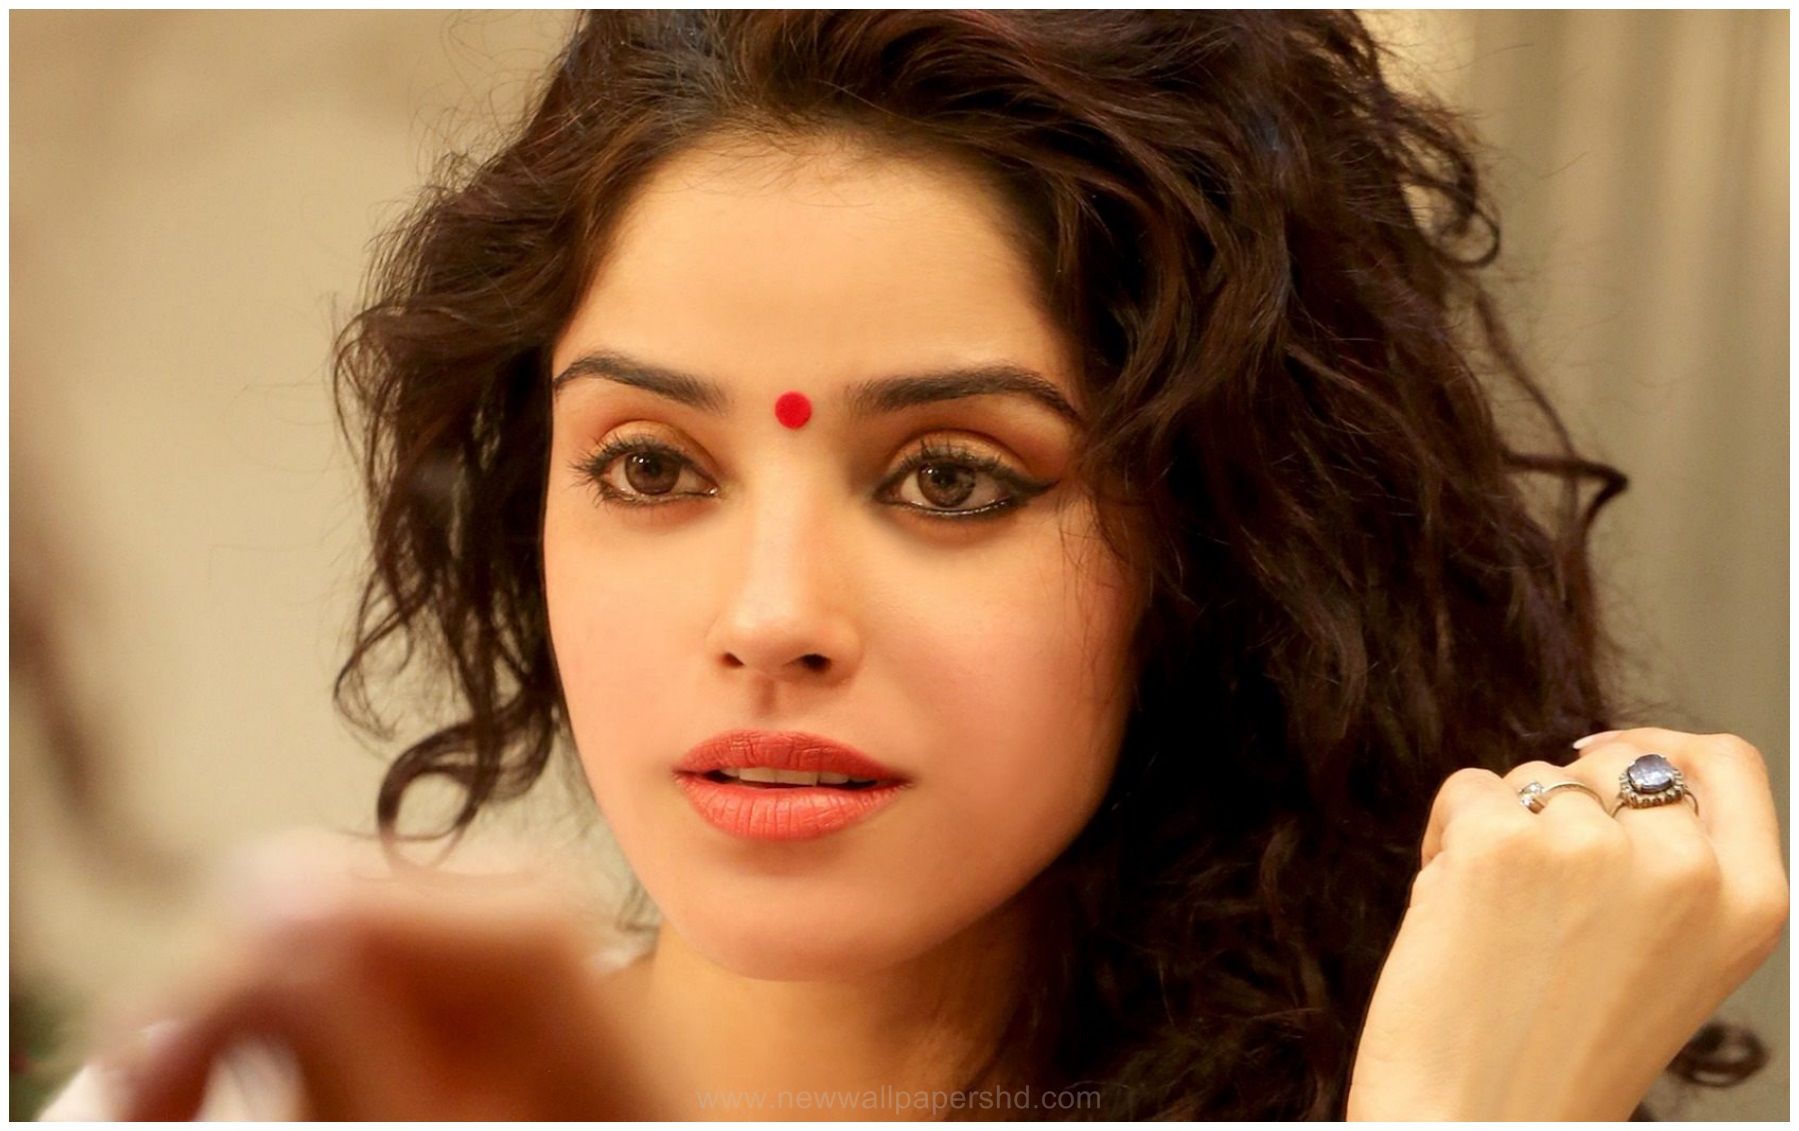 Image For Pia Bajpai Bollywood Actress Hd Wallpaper - Model Sexy Eyes Beauty - HD Wallpaper